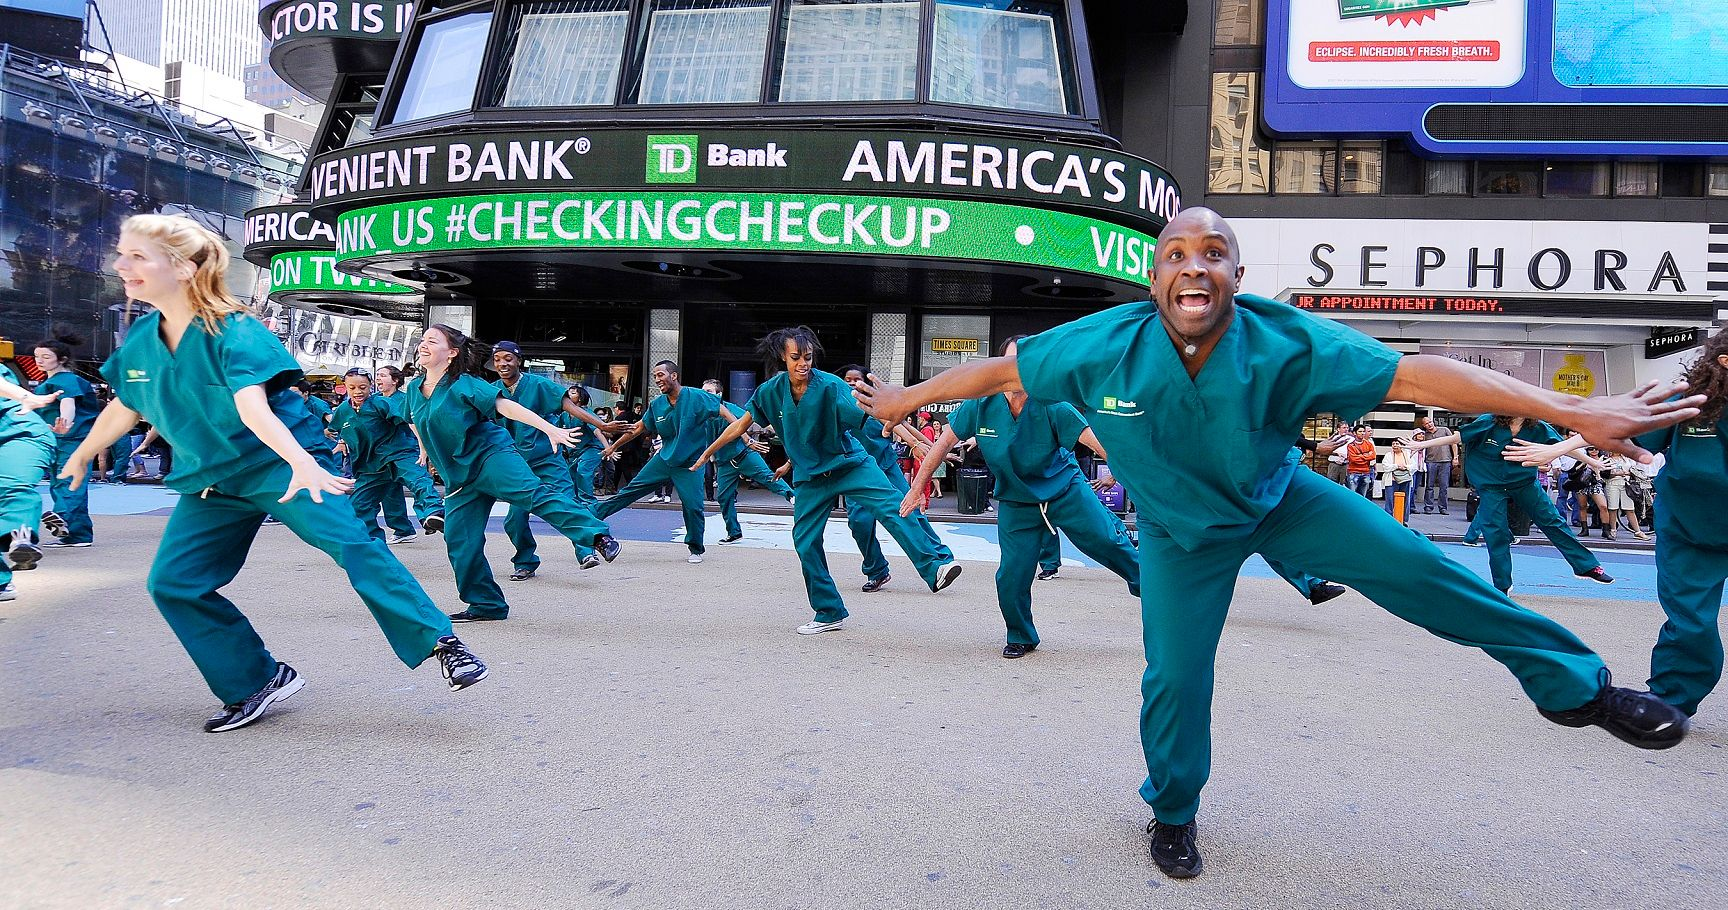 10 Amazing Flash Mob Moments Caught on Video